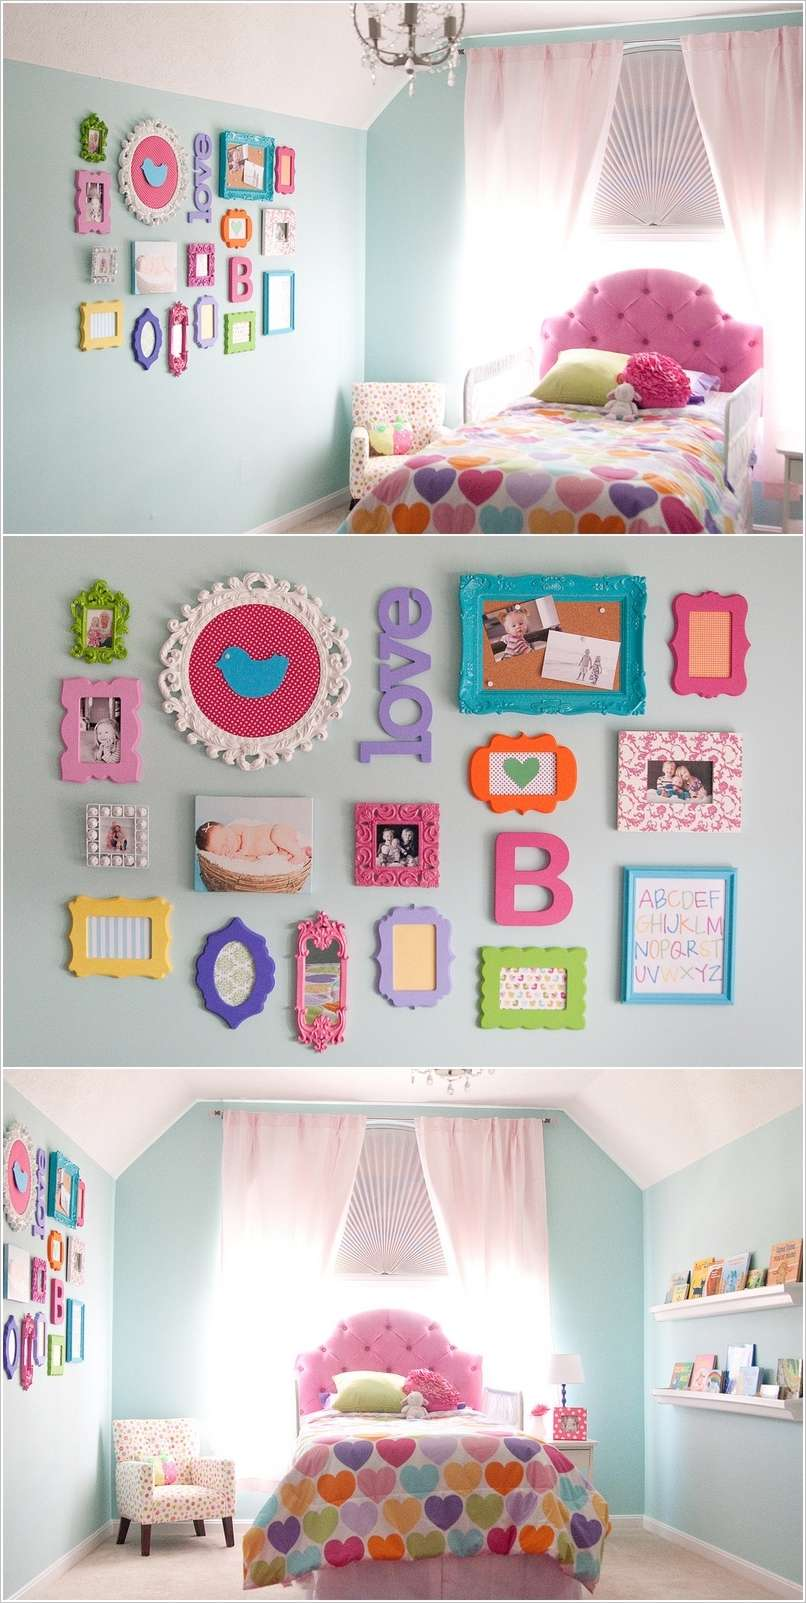 10 cute ideas to decorate a toddler girl 39 s room for Toddler girl bedroom ideas